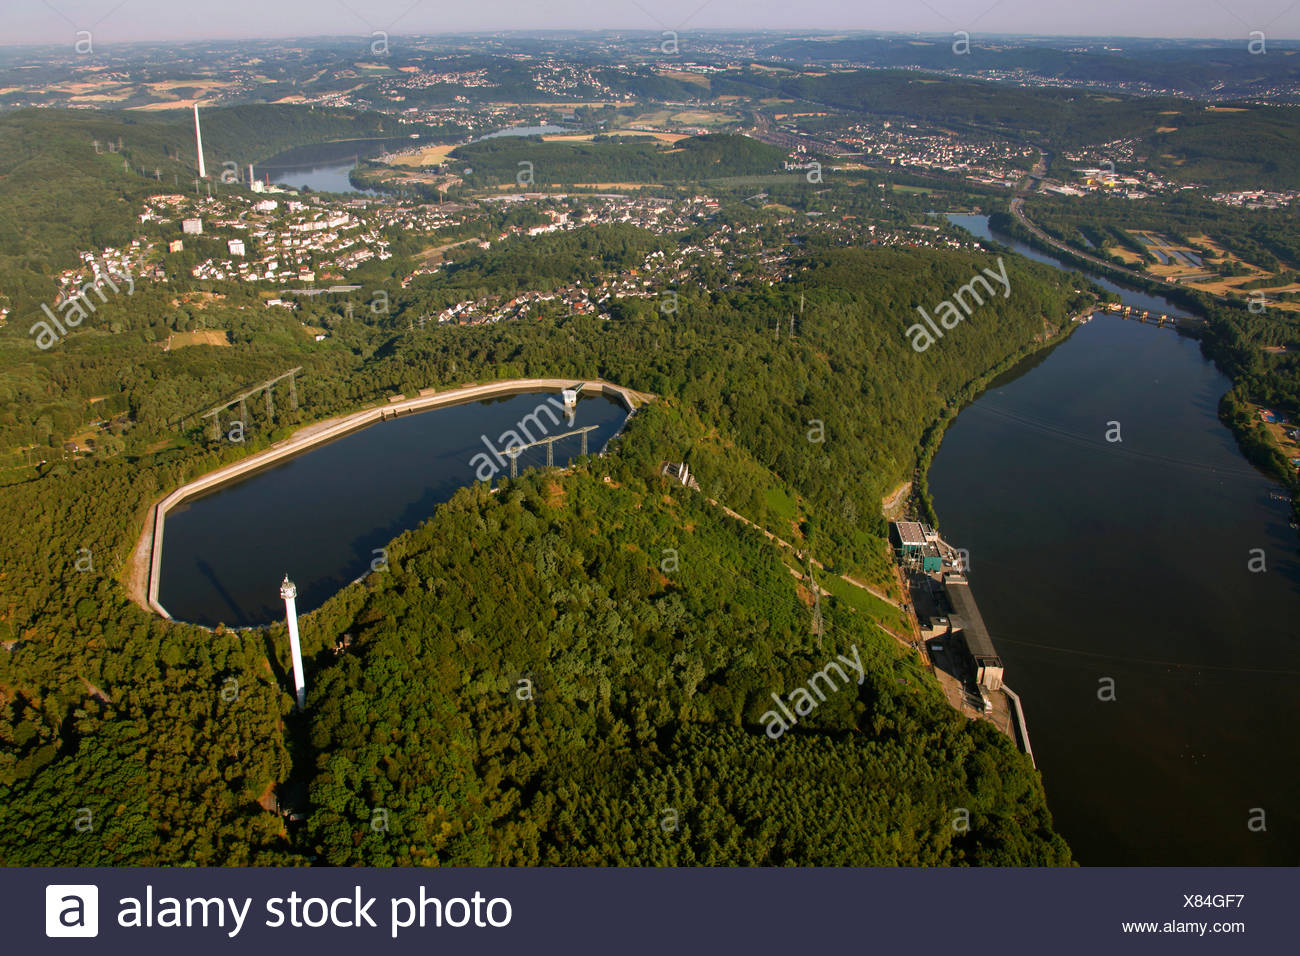 Aerial view, Koepchenwerk pumped-storage plant with reservoirs owned by RWE, a German electric power company, Ruhr river - Stock Image